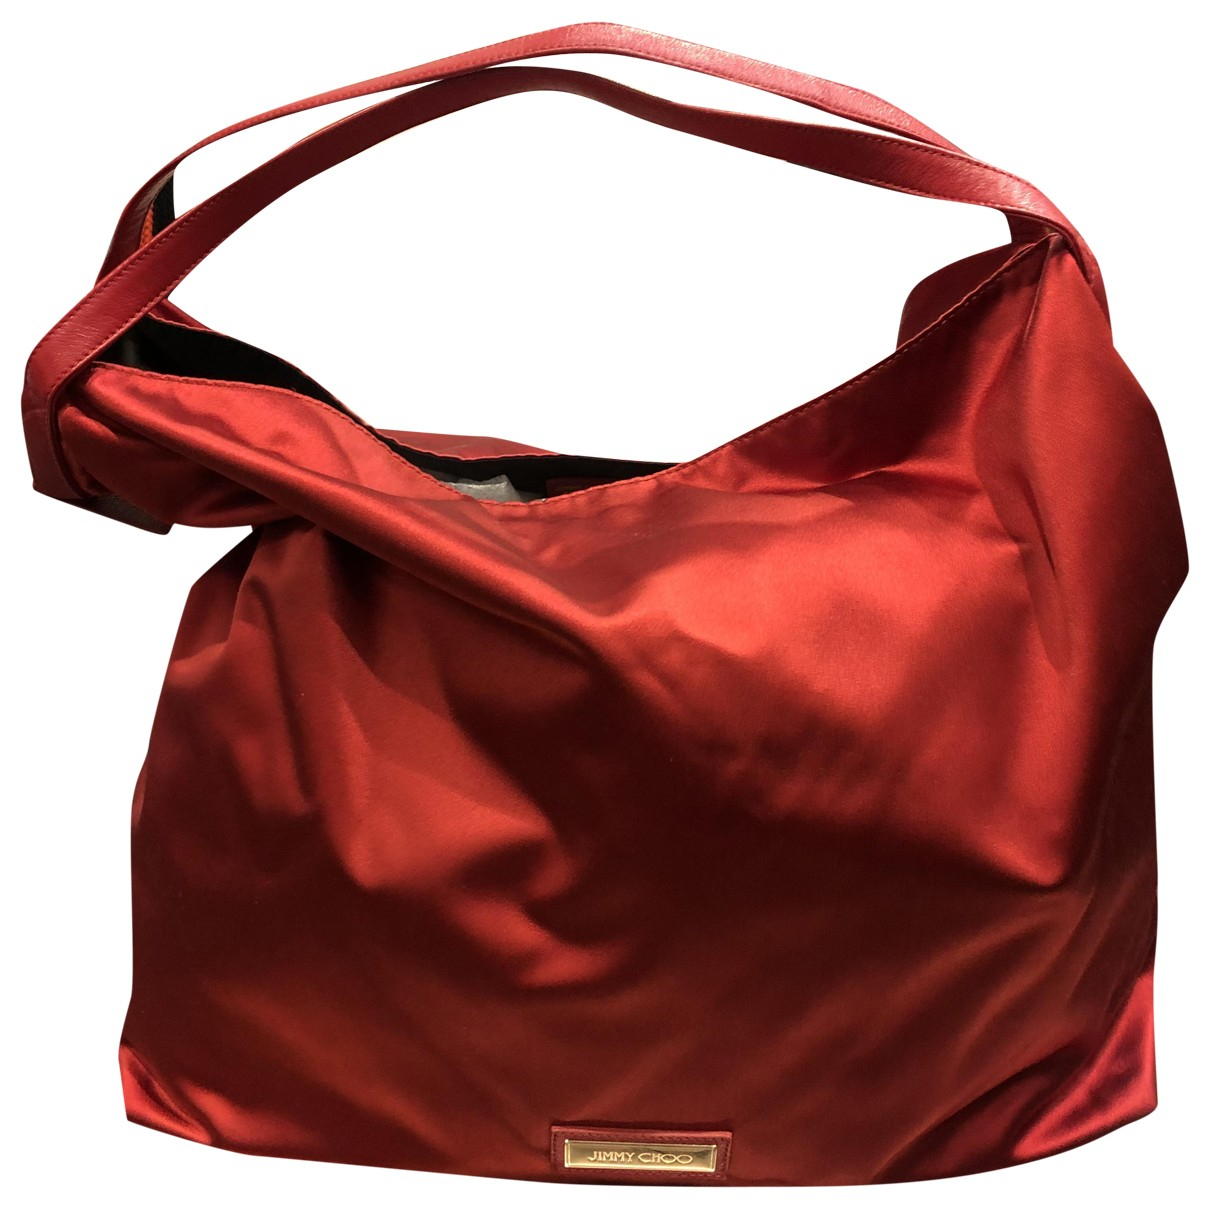 Jimmy Choo \N Red Cloth handbag for Women \N